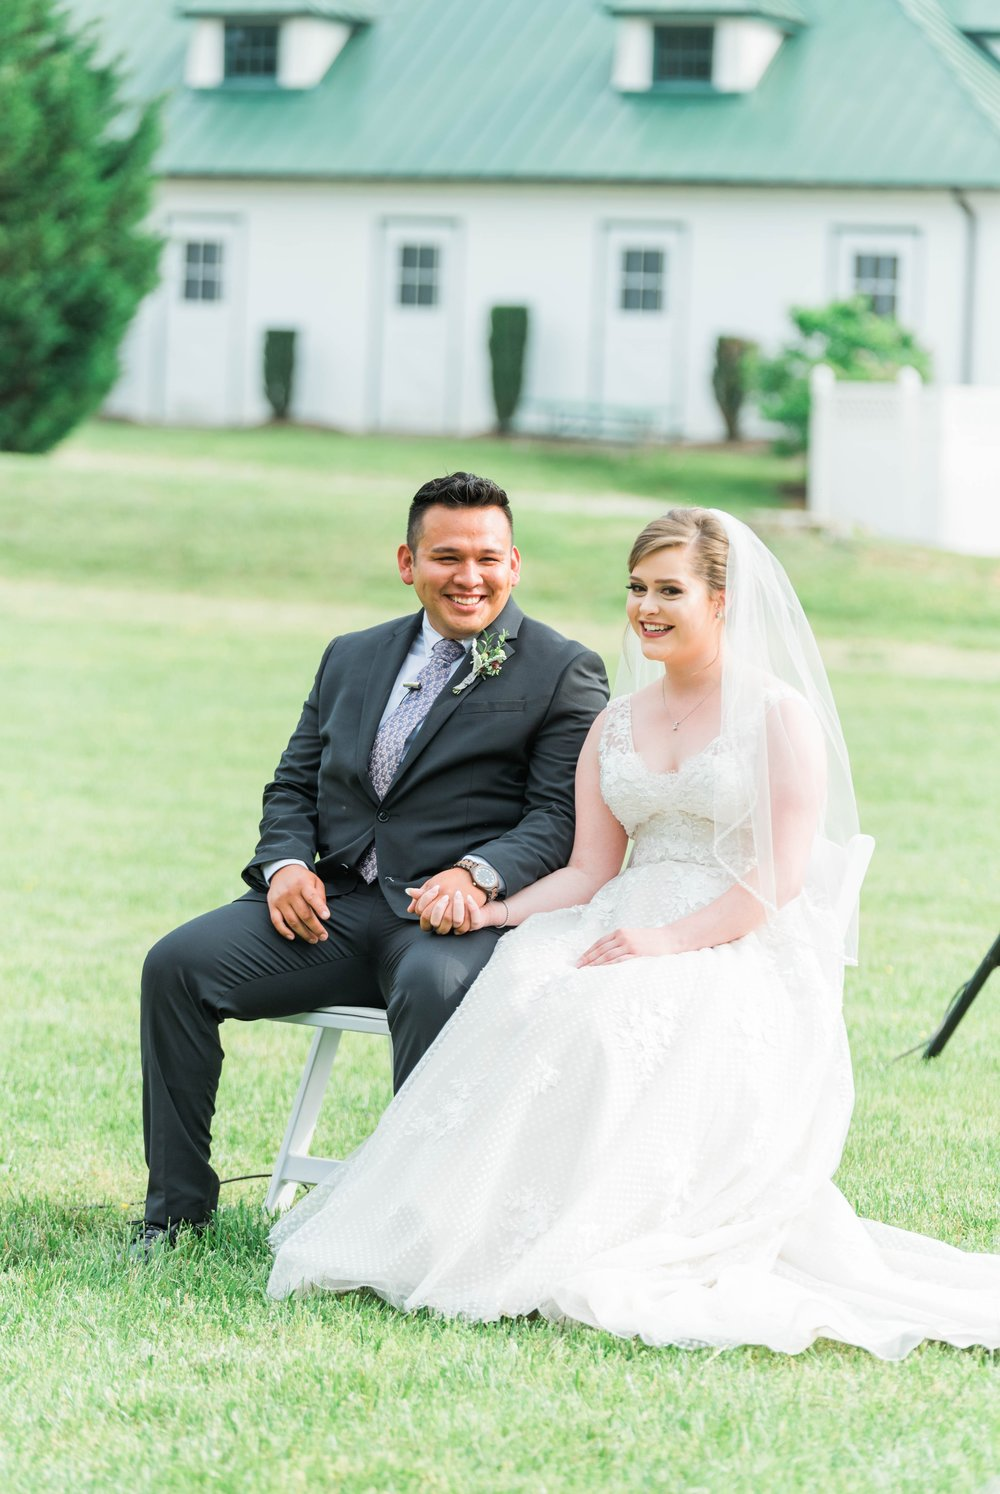 Jillian+Abi_OakridgeEstate_Wedding_VirginiaWeddingPhotographer_SpringWedding 3.jpg